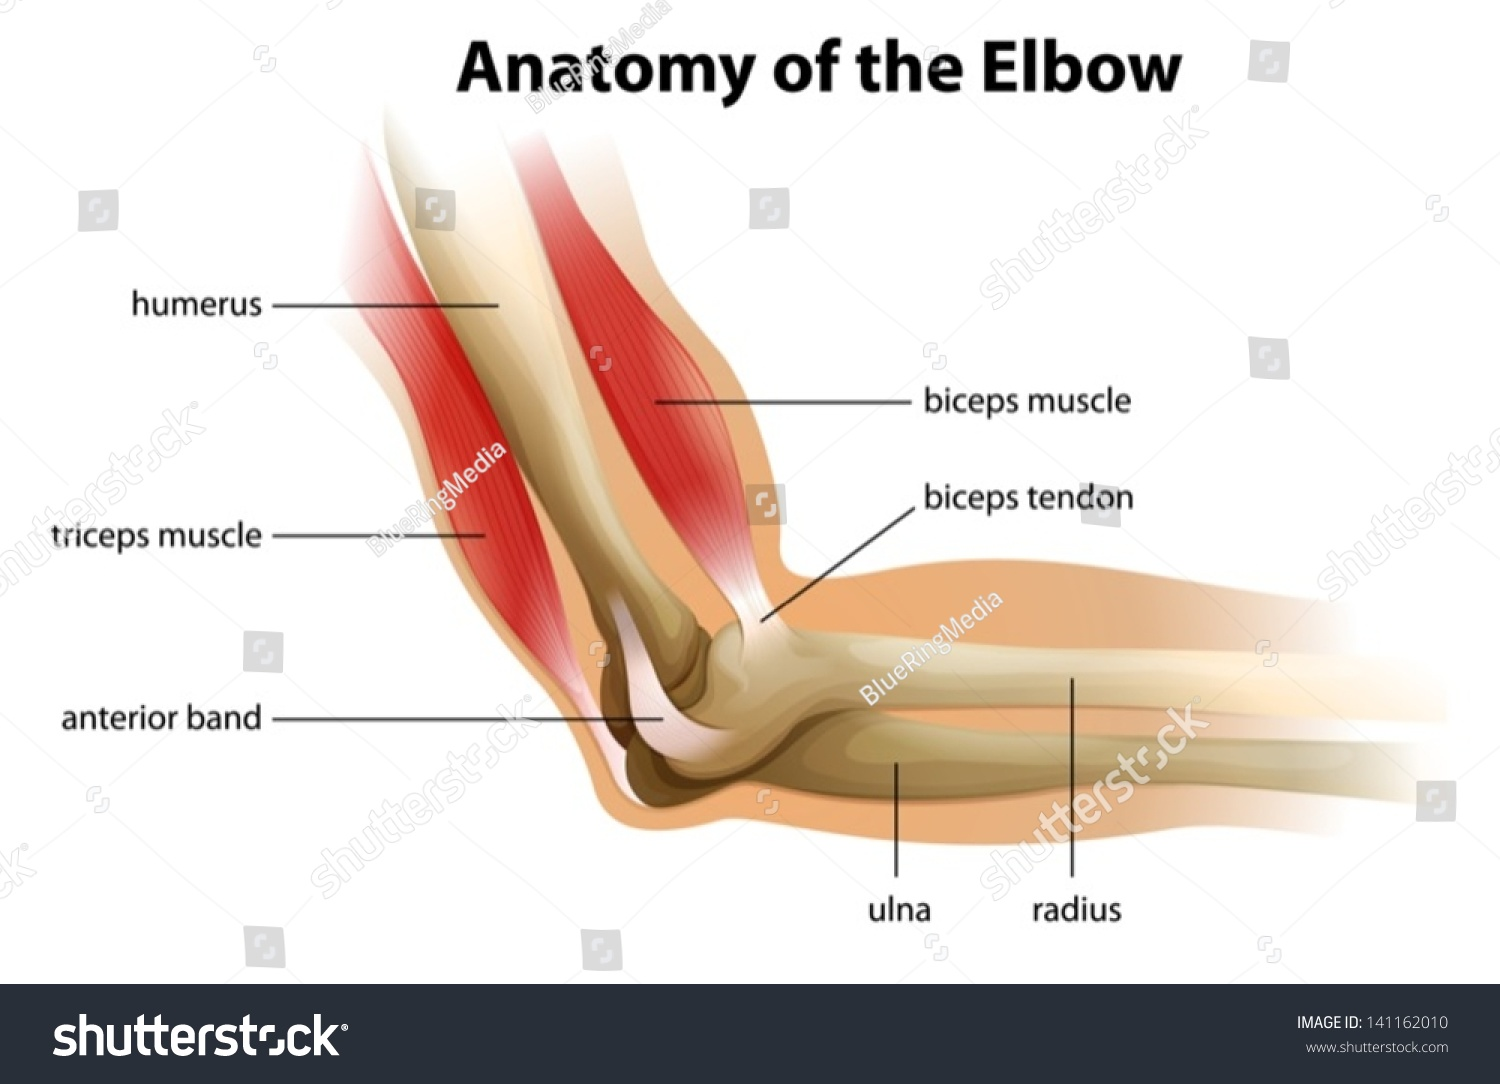 Illustration Showing Anatomy Human Elbow Stock Vector (Royalty Free ...